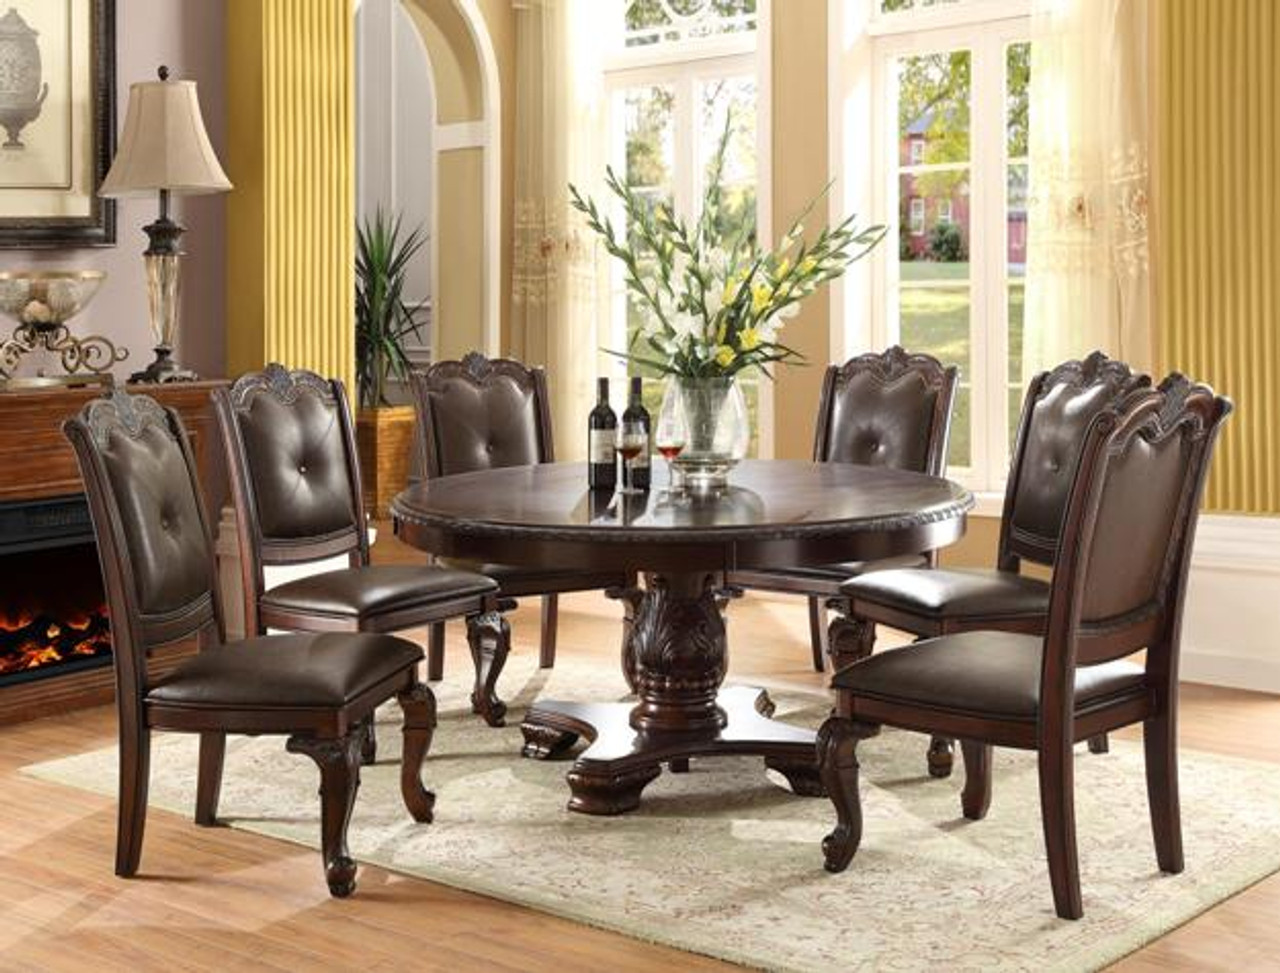 60 Kiera Dark Cherry Round Dining Table For 6 Persons